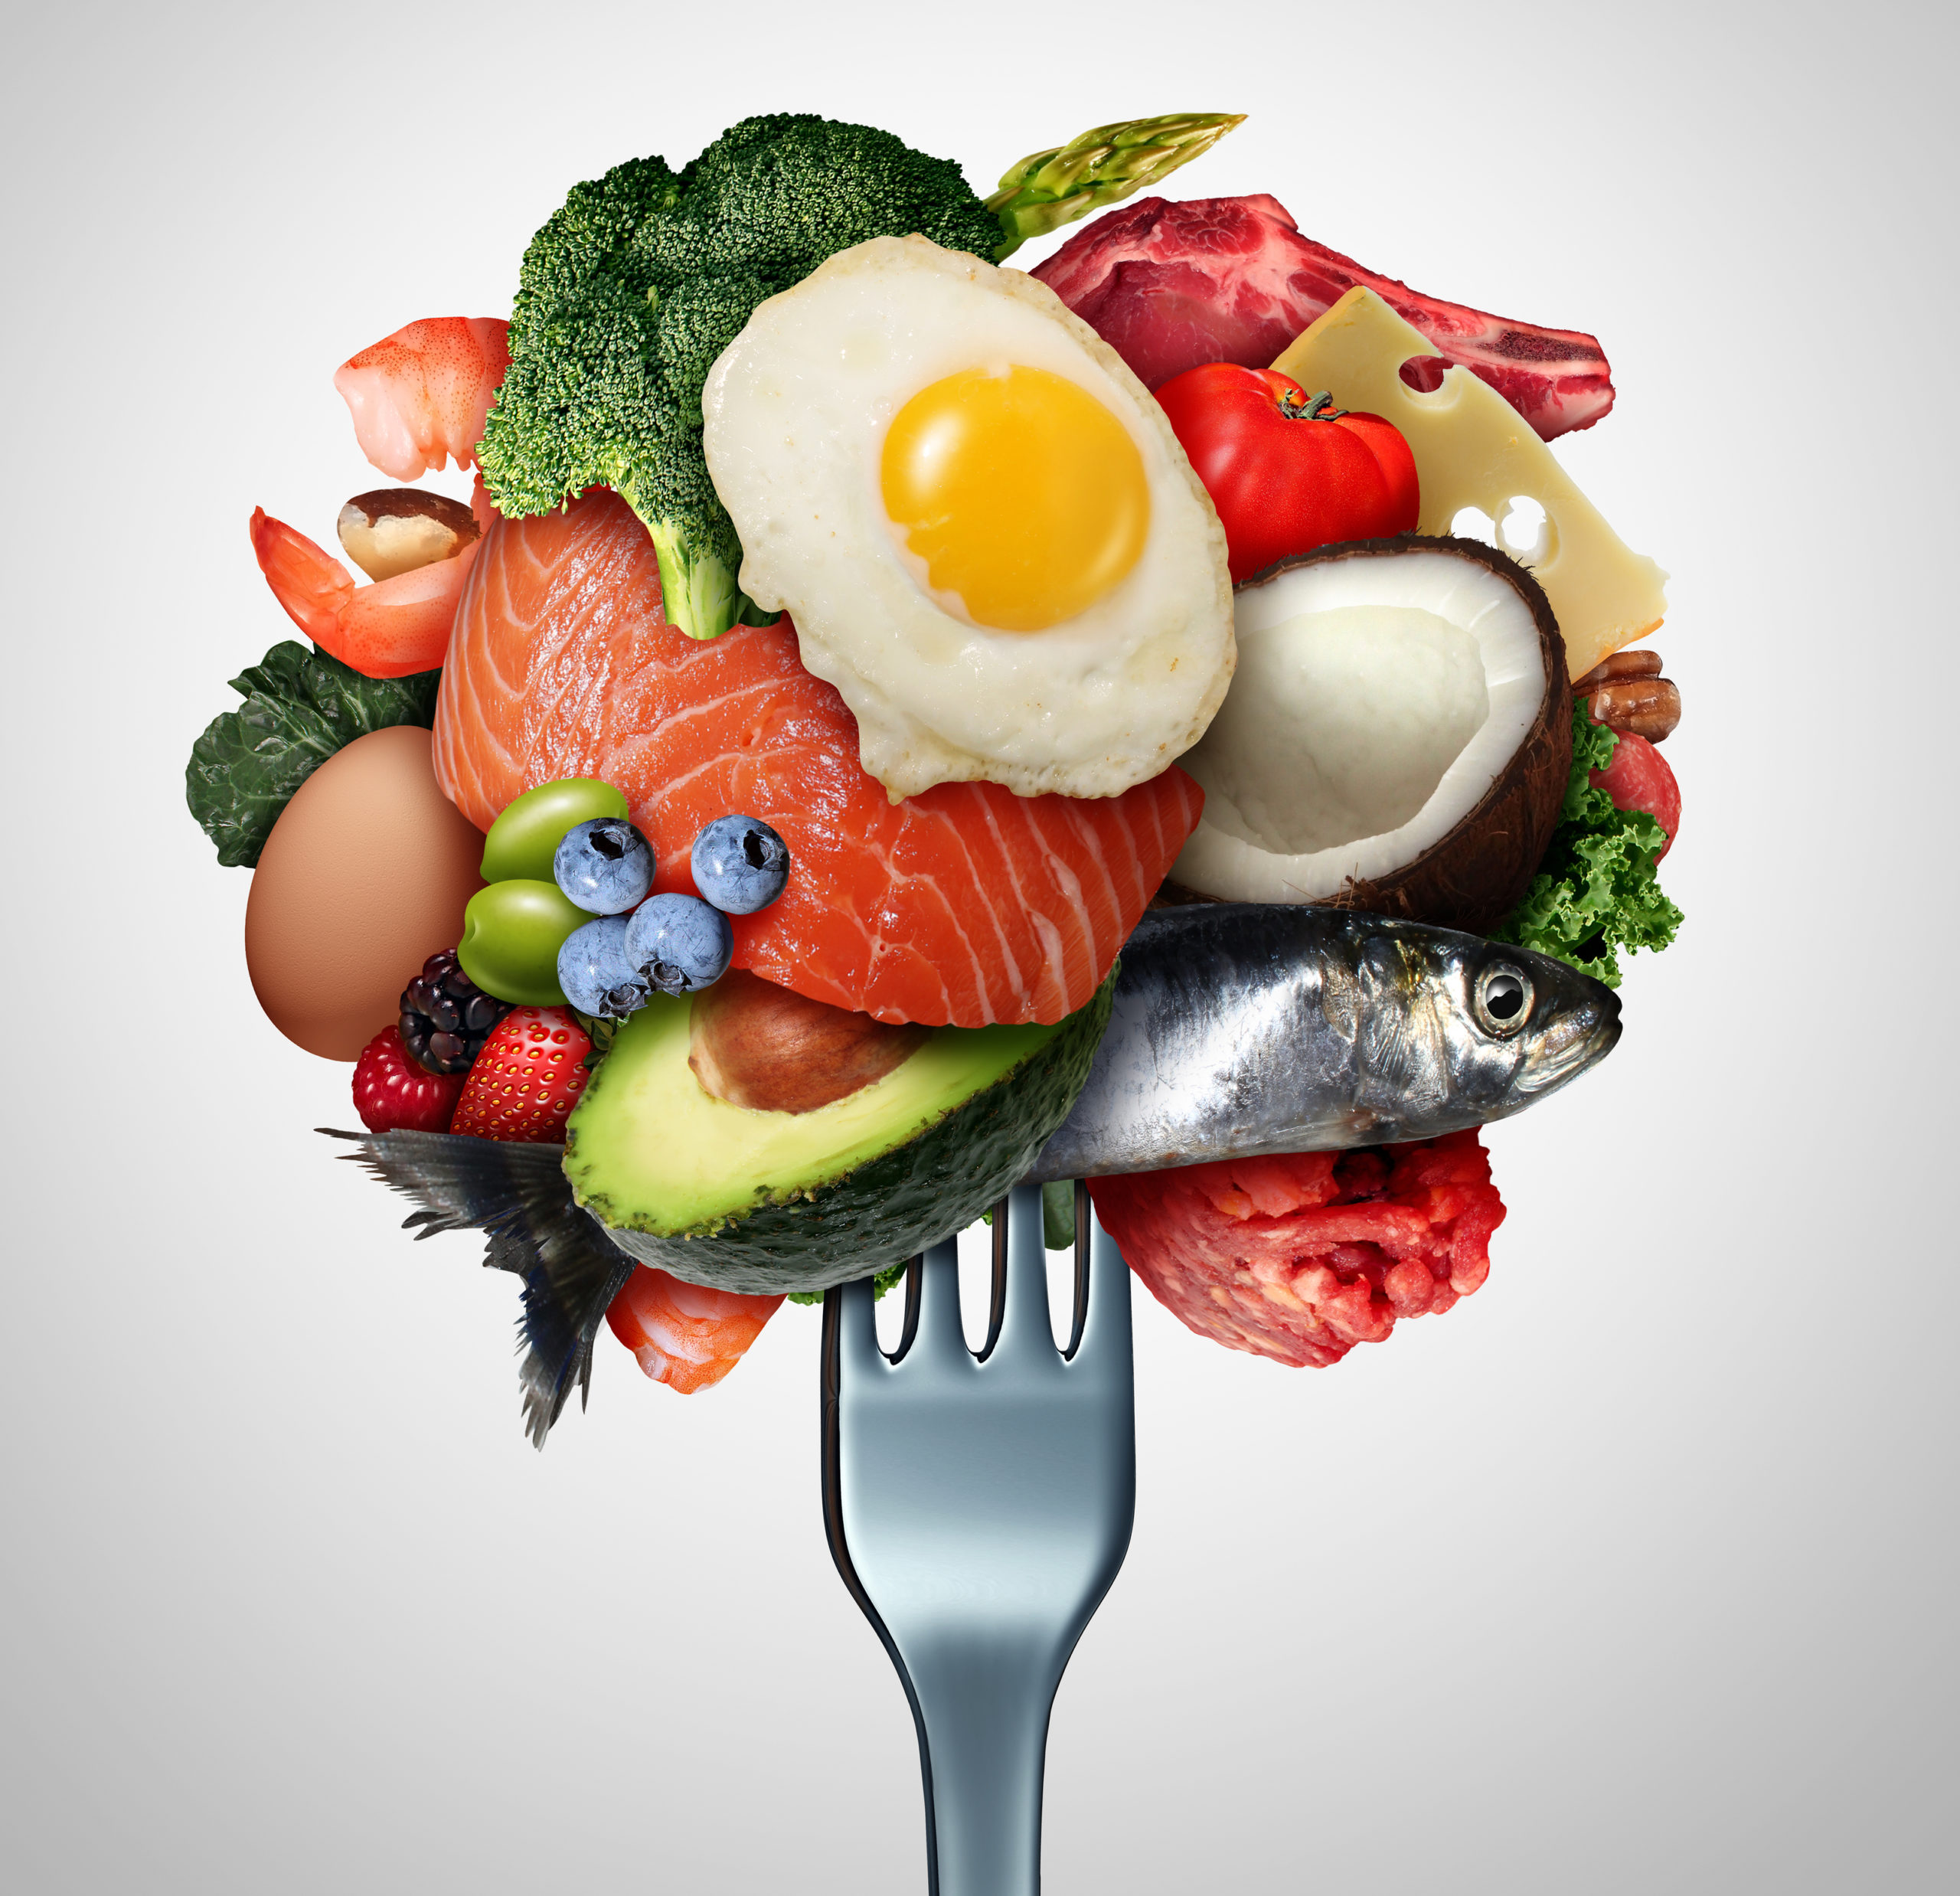 Keto Diet With Protein Is Best For Weight Loss